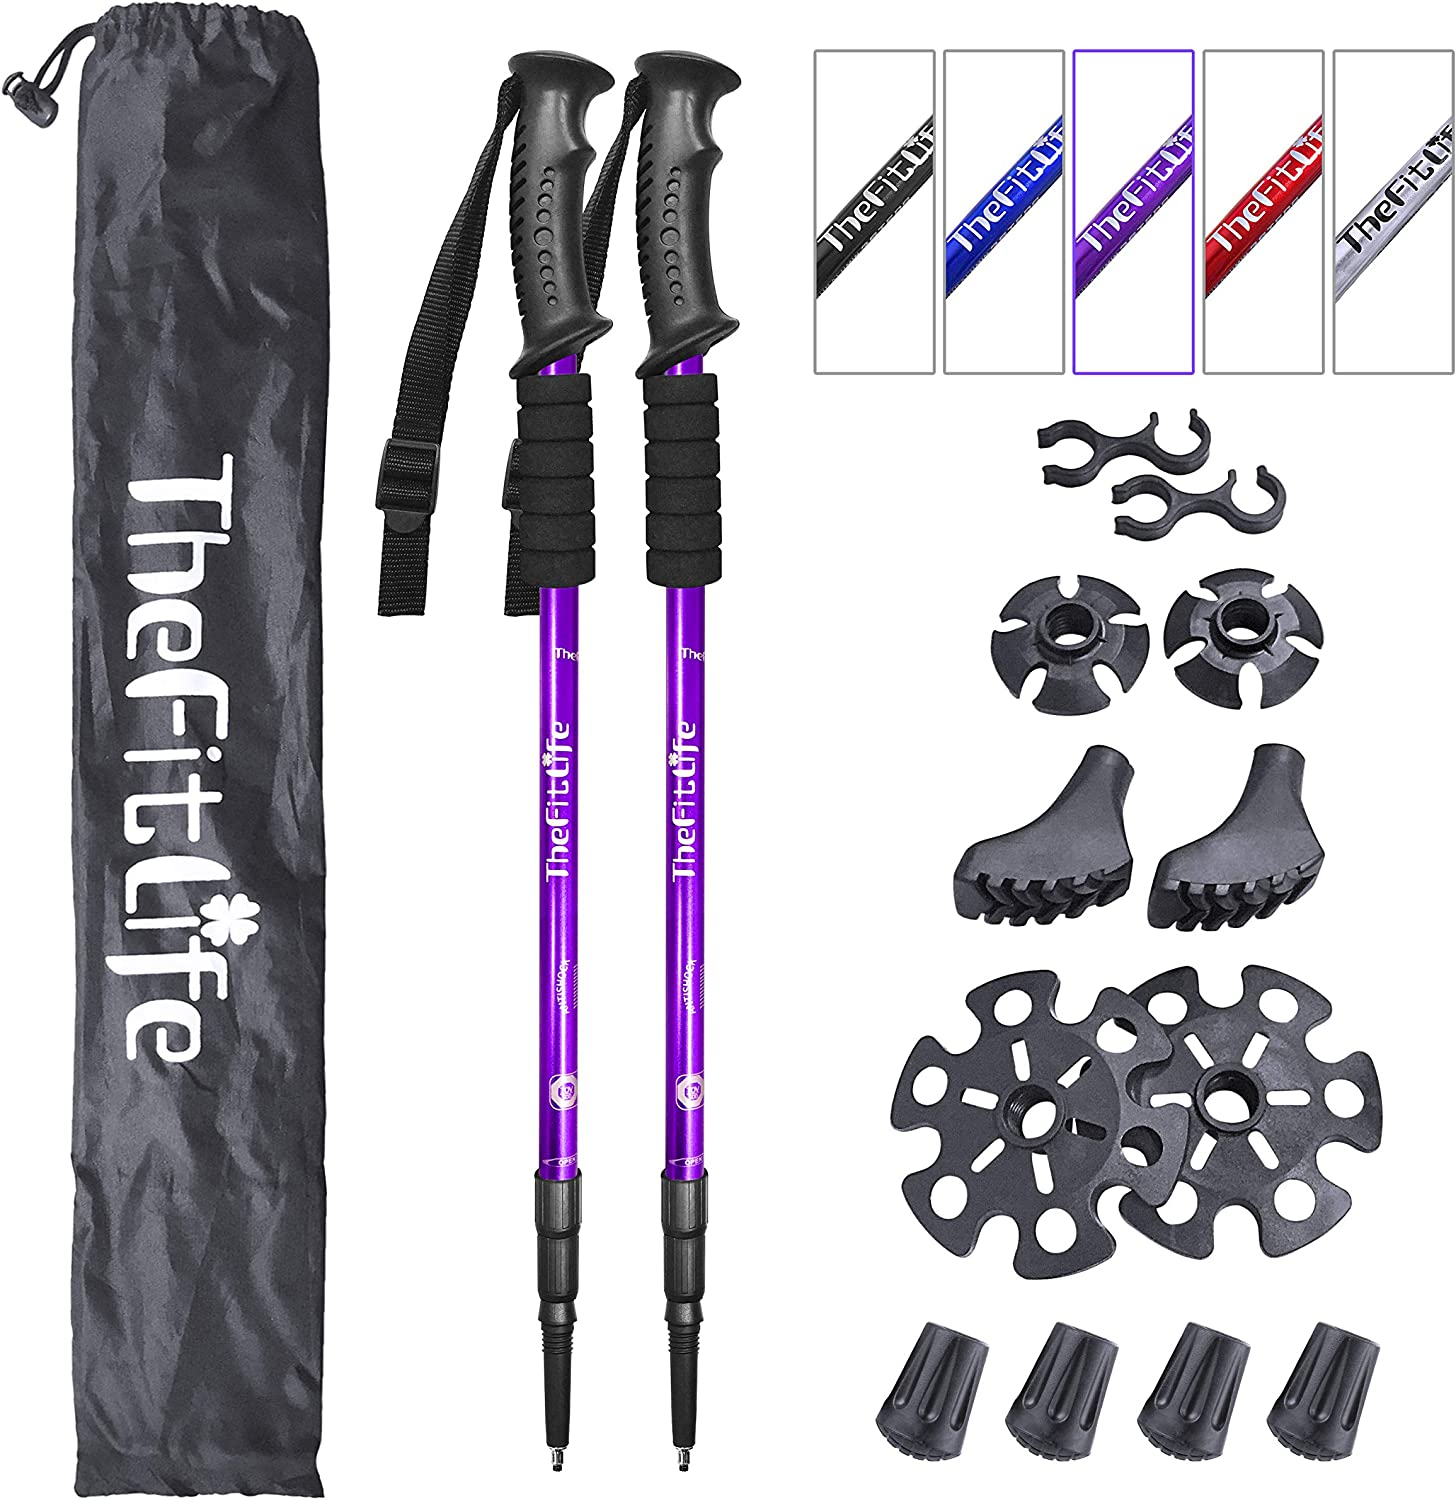 TheFitLife Nordic Walking Trekking Poles – 2 Pack with Antishock and Quick Lock System, Telescopic, Collapsible, Ultralight for Hiking, Camping, Mountaining, Backpacking, Walking, Trekking